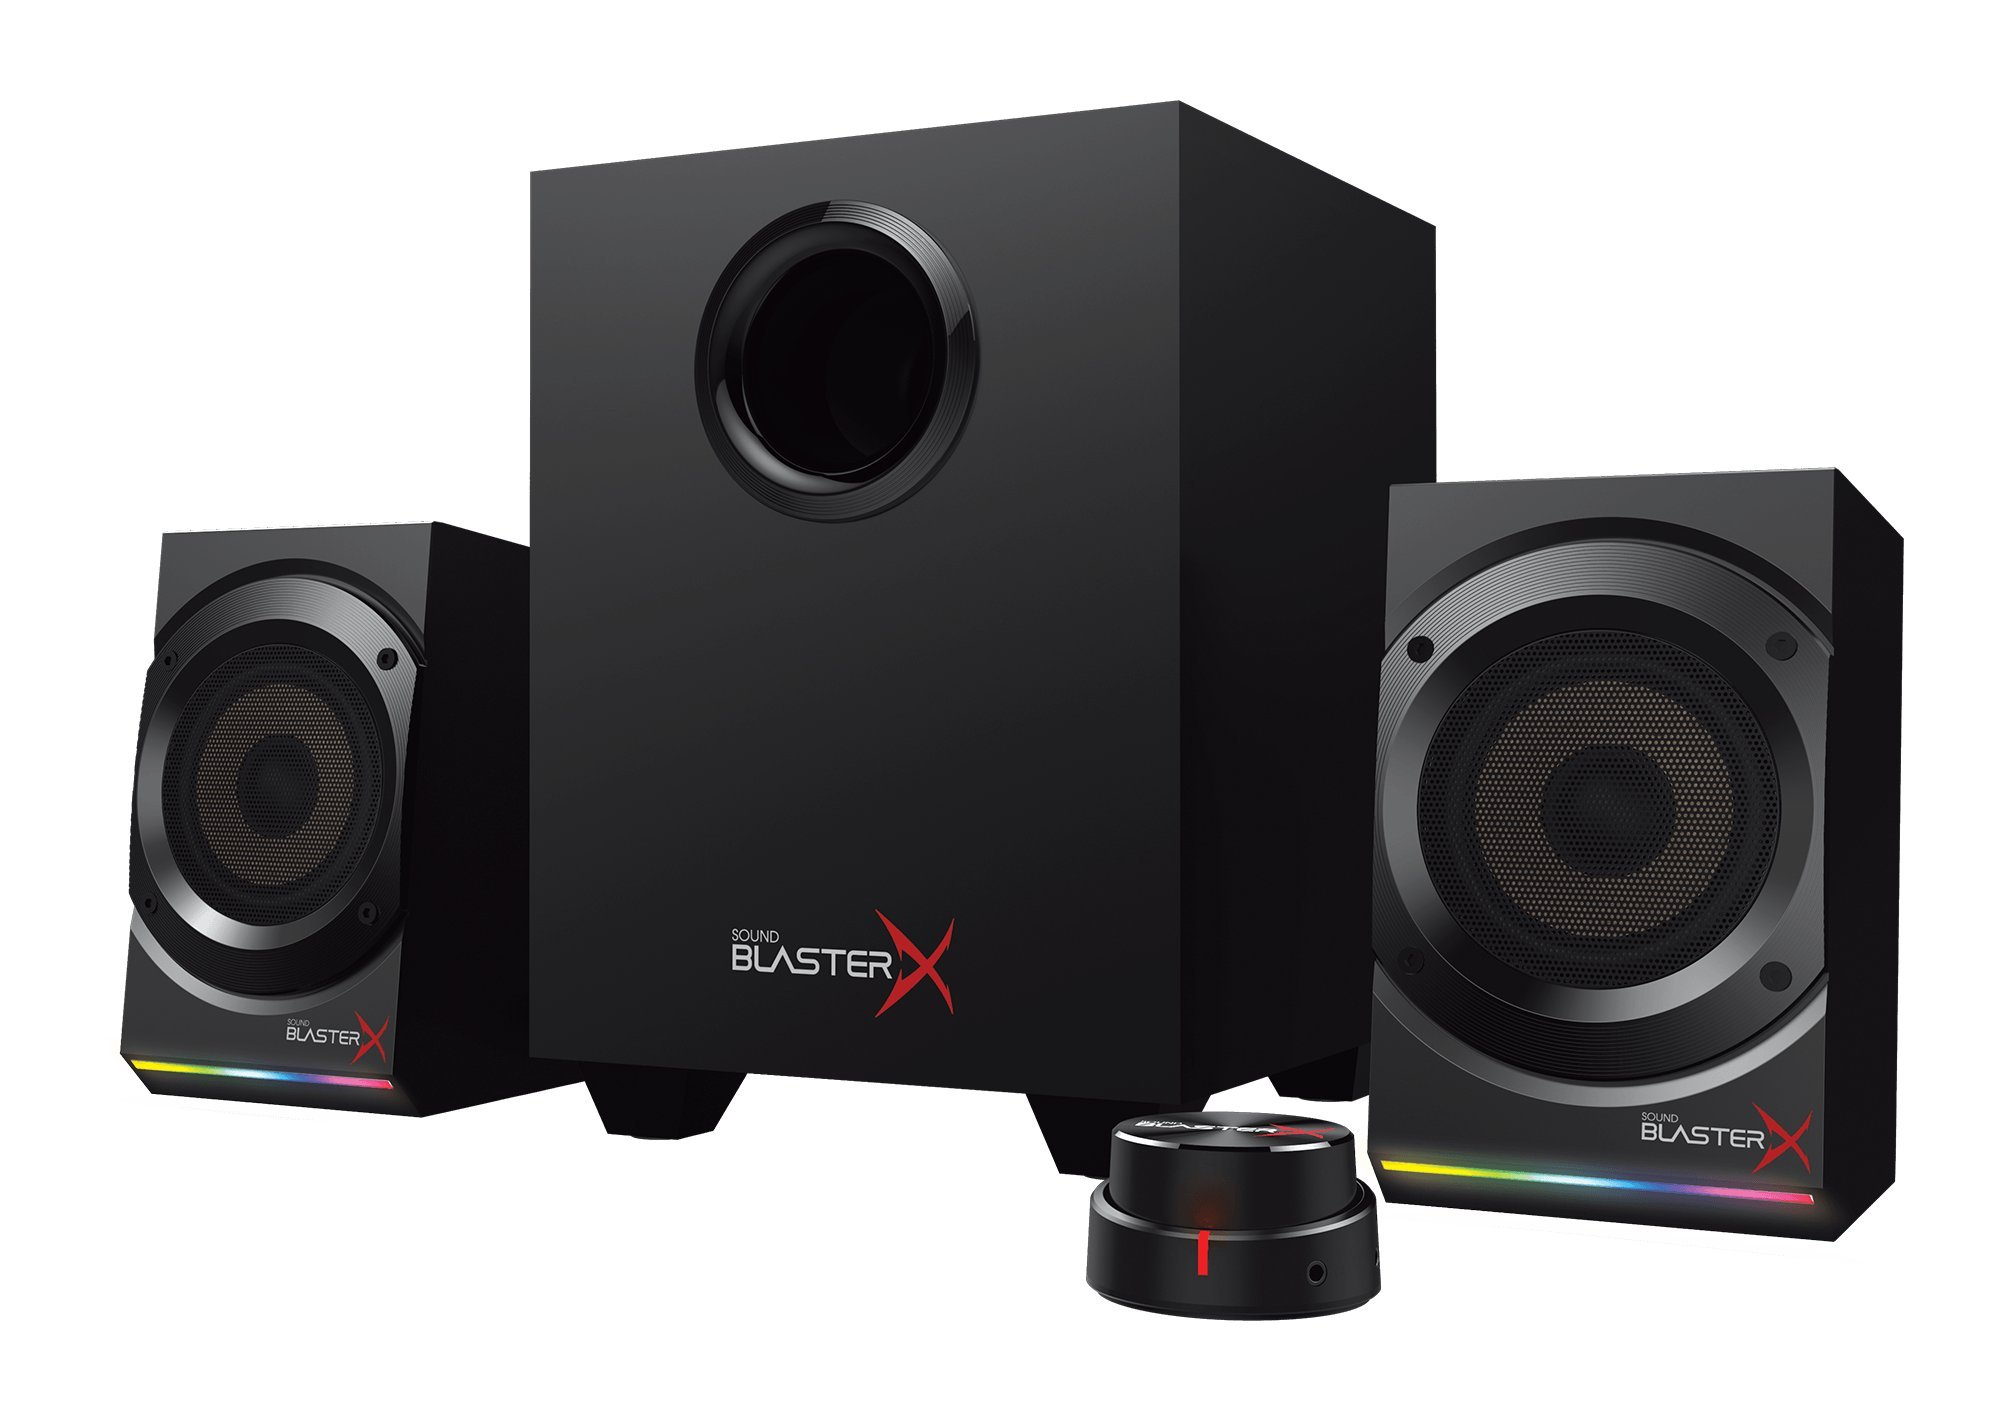 Sound BlasterX Kratos S5 2.1 PC Computer Gaming Speaker System with Subwoofer and Customizable RGB Lighting - 51MF0470AA001 by Creative